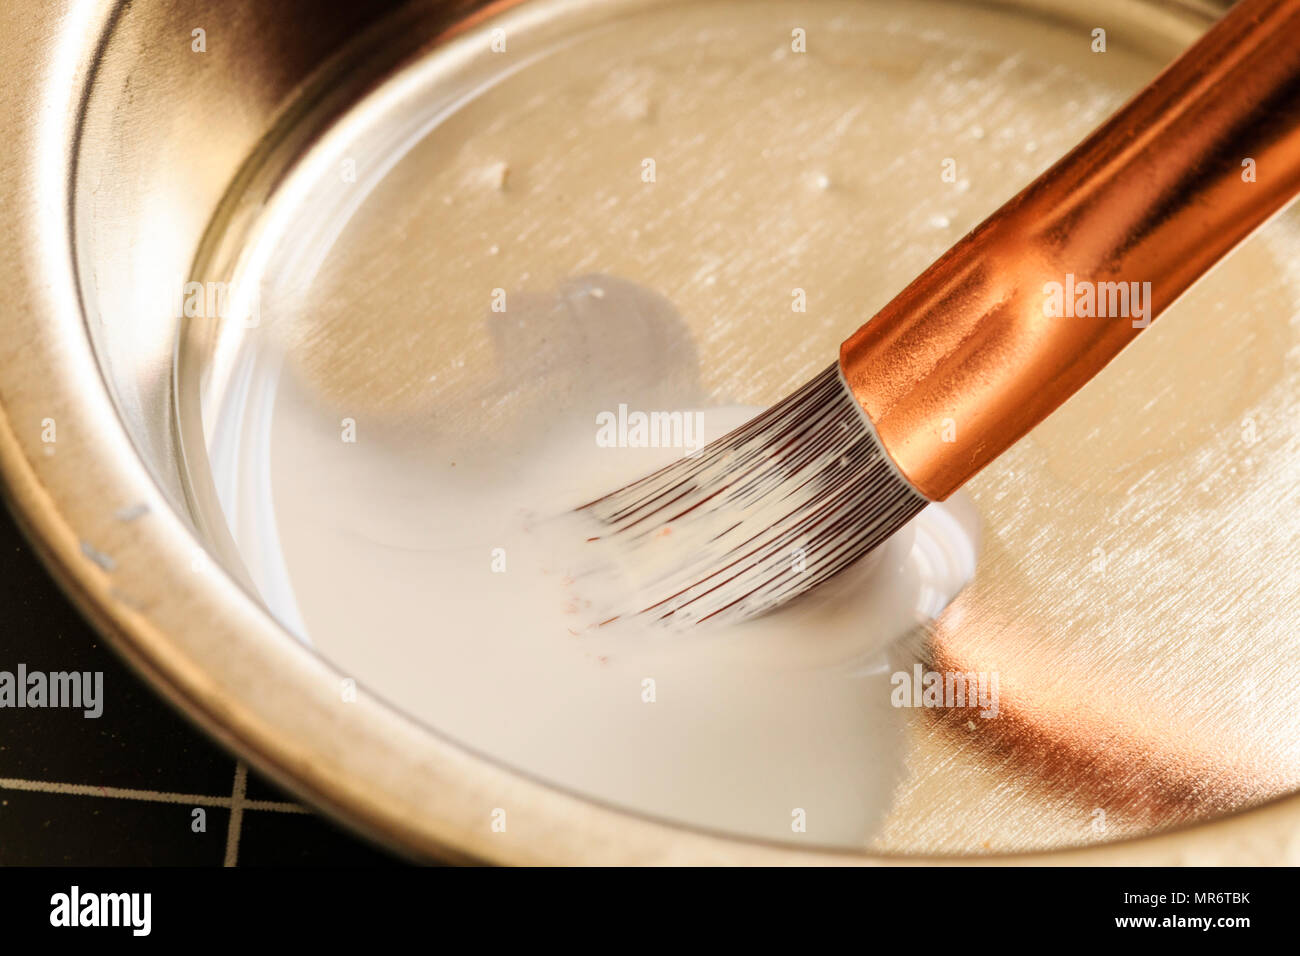 Small modeling paint brush in bowl being cleaned after use with paint thinner. Some blurred movement. Hairs of the brush soaked in liquid. - Stock Image